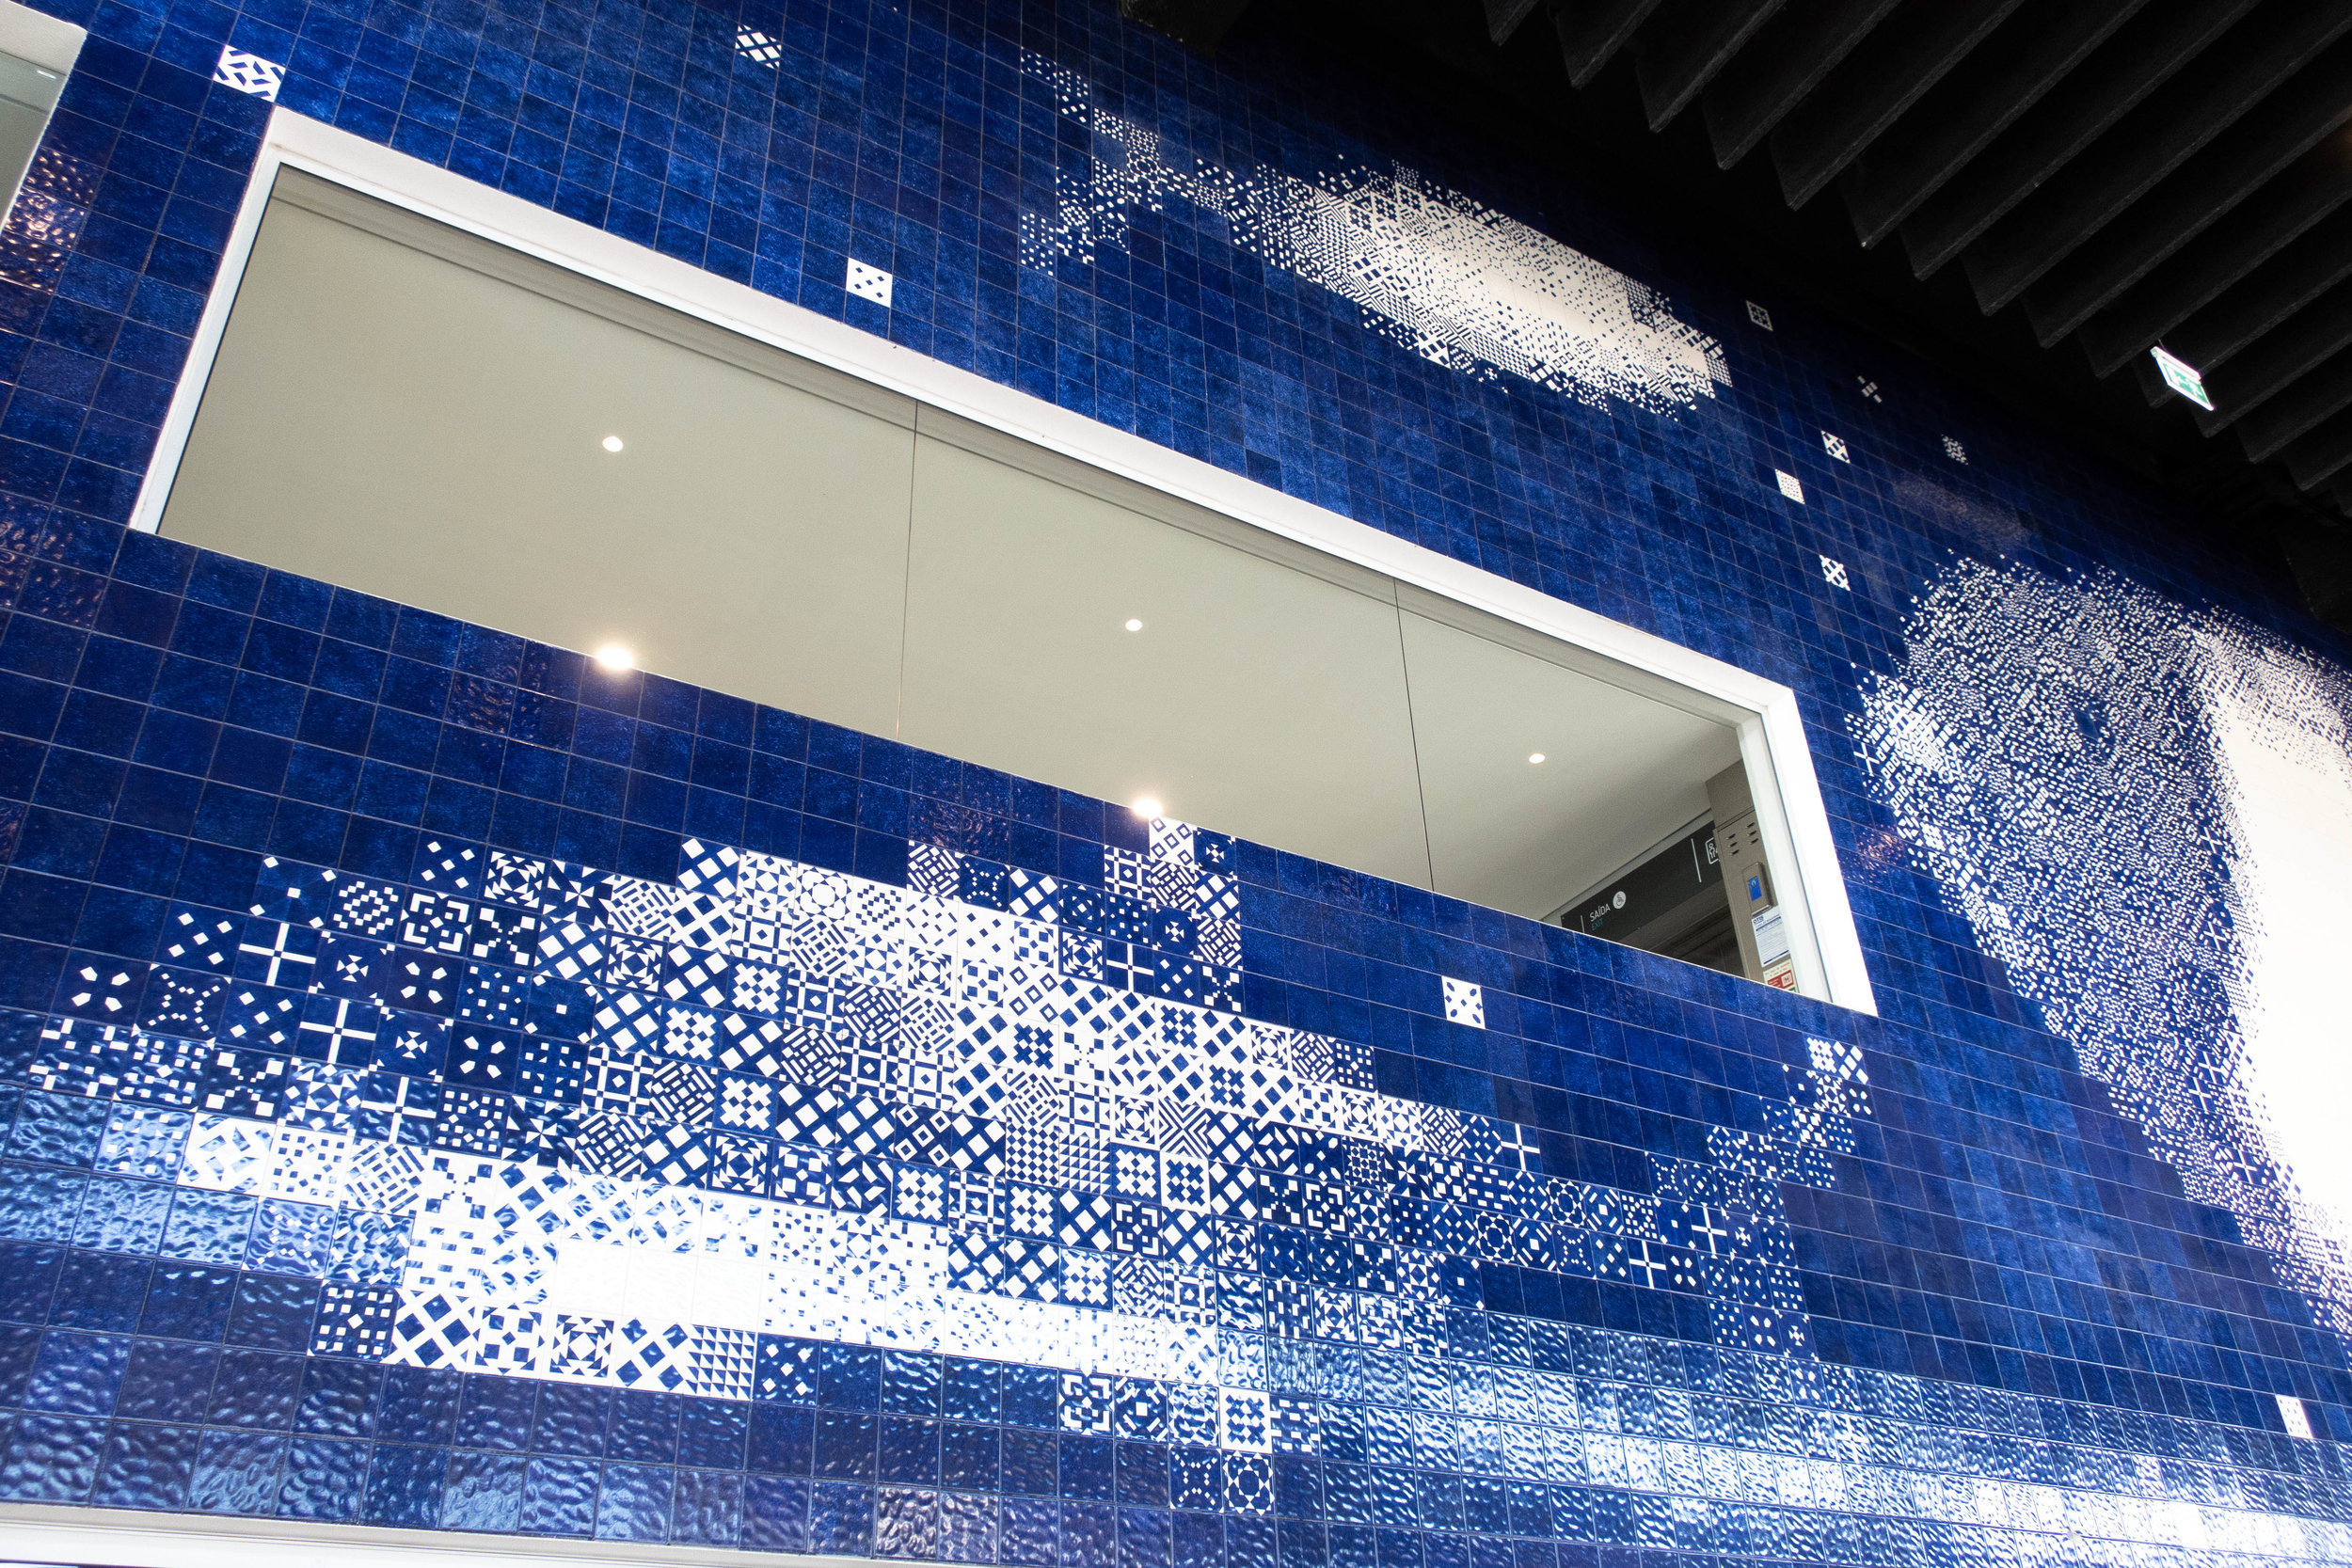 Giant pixelated marine animals are covering the wall. It shows how contemporary design (1998, but still looks modern) meets the manufactured tradition and gives it a new life. Each tile has a unique pattern to create different tones of blue.